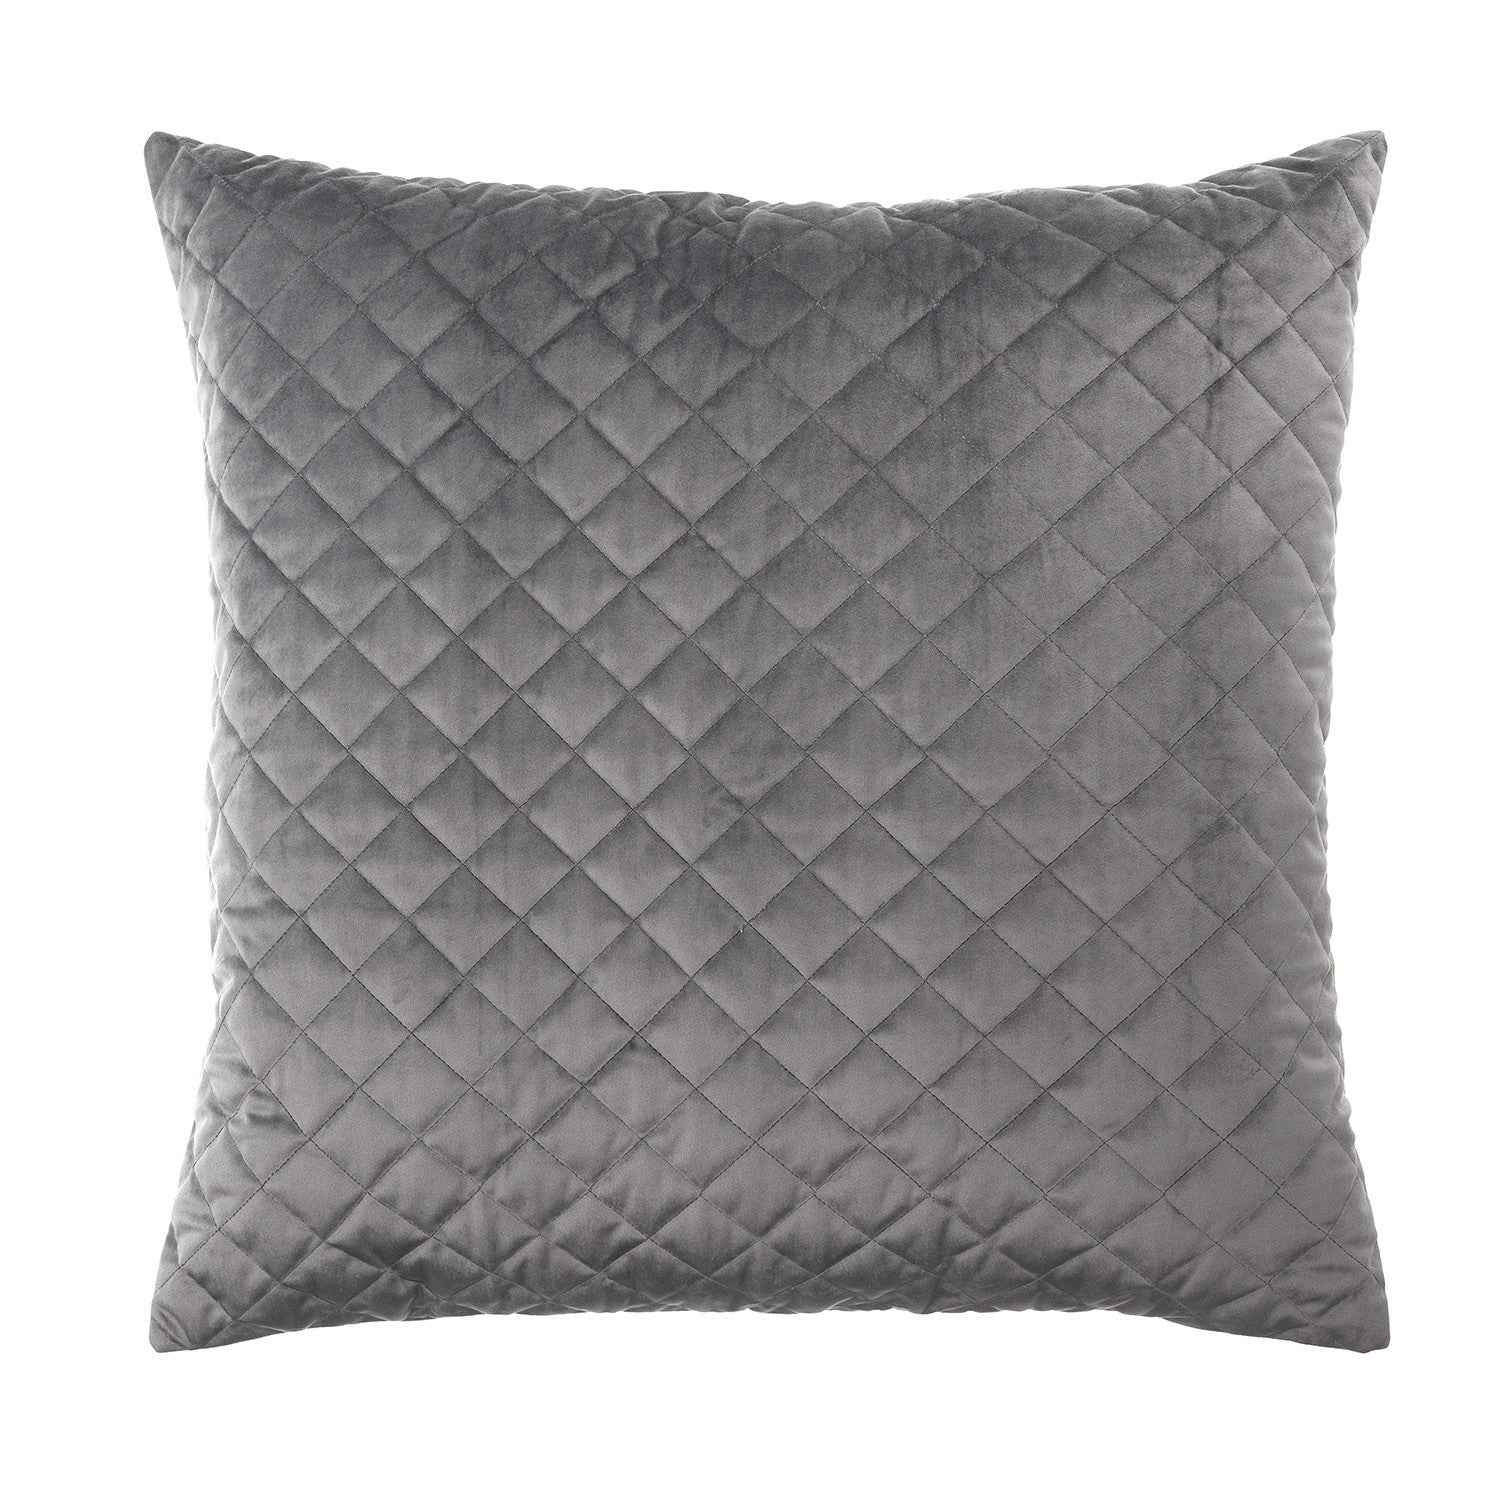 Vivid Coordinate Velvet Grey European Pillowcase